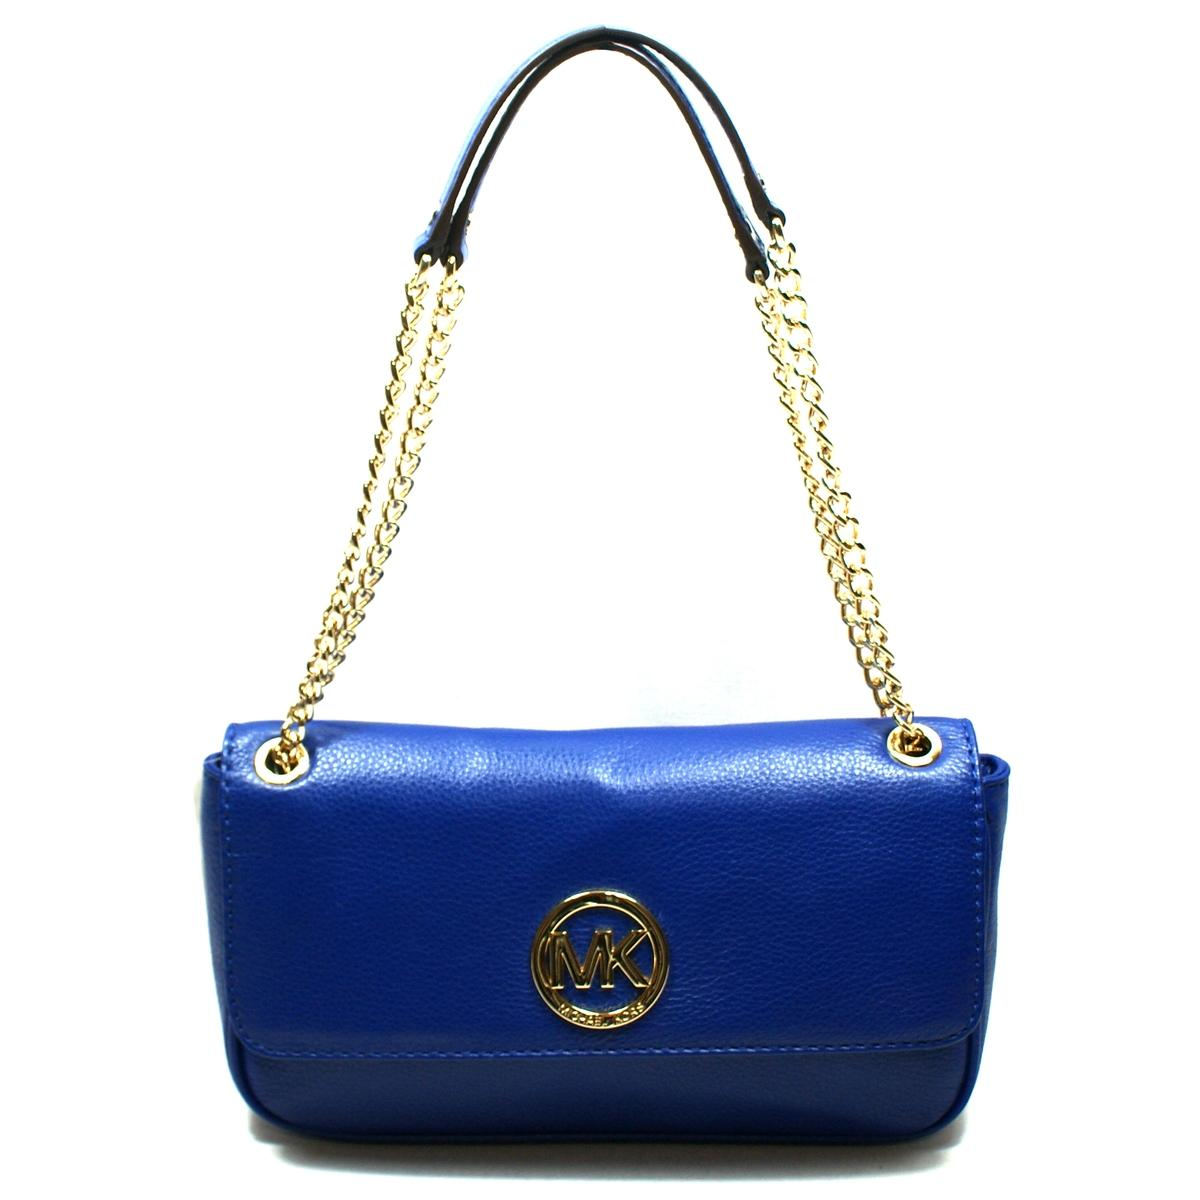 Hot Michael Kors Fulton Shoulder - Products Fulton Small Flap Genuine Leather Shoulder Bag Cadet P3688